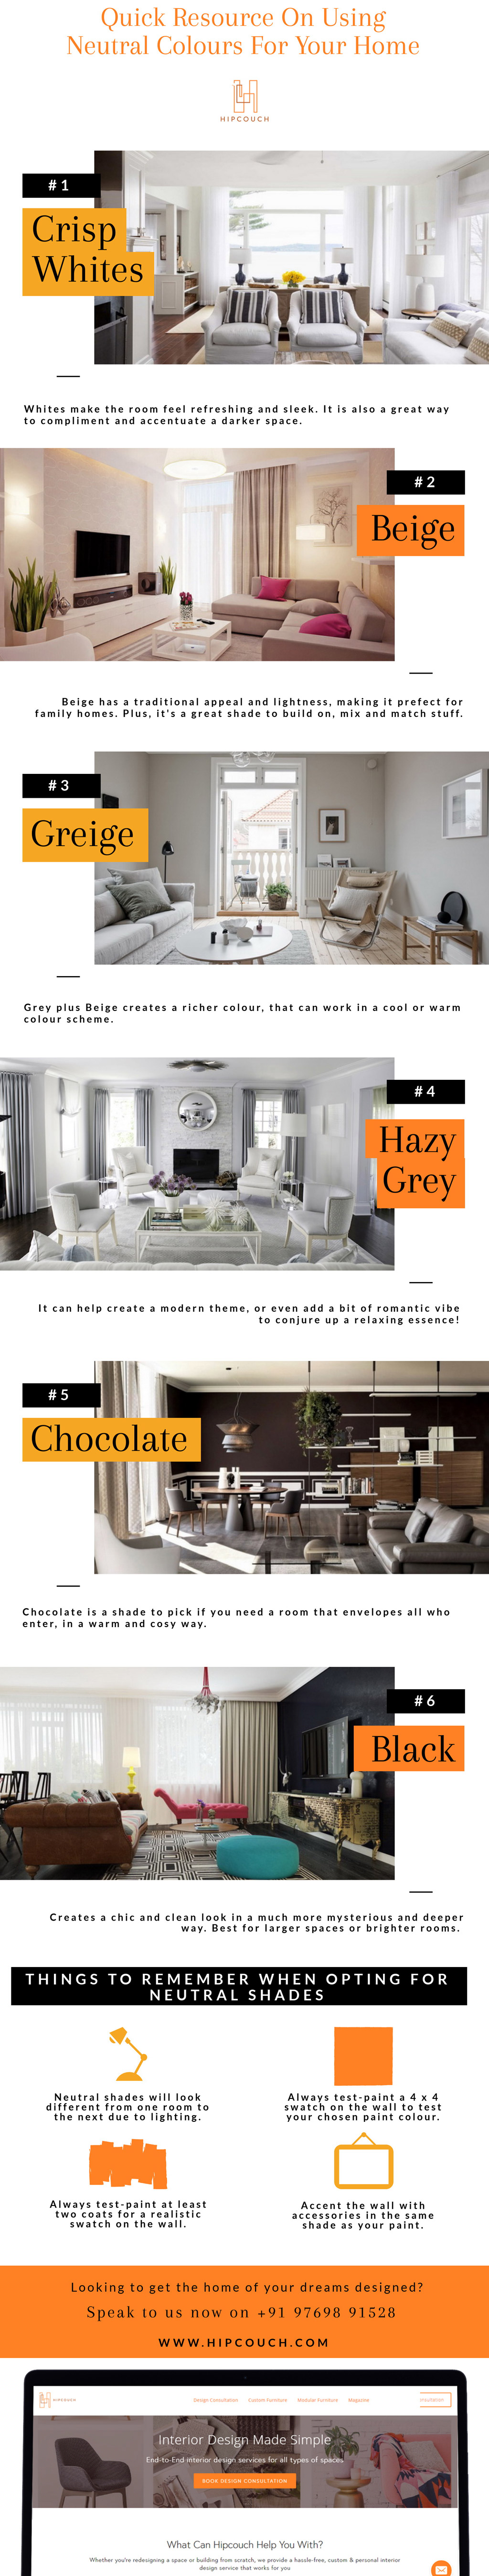 Using Neutral Colours Correctly For Your Home